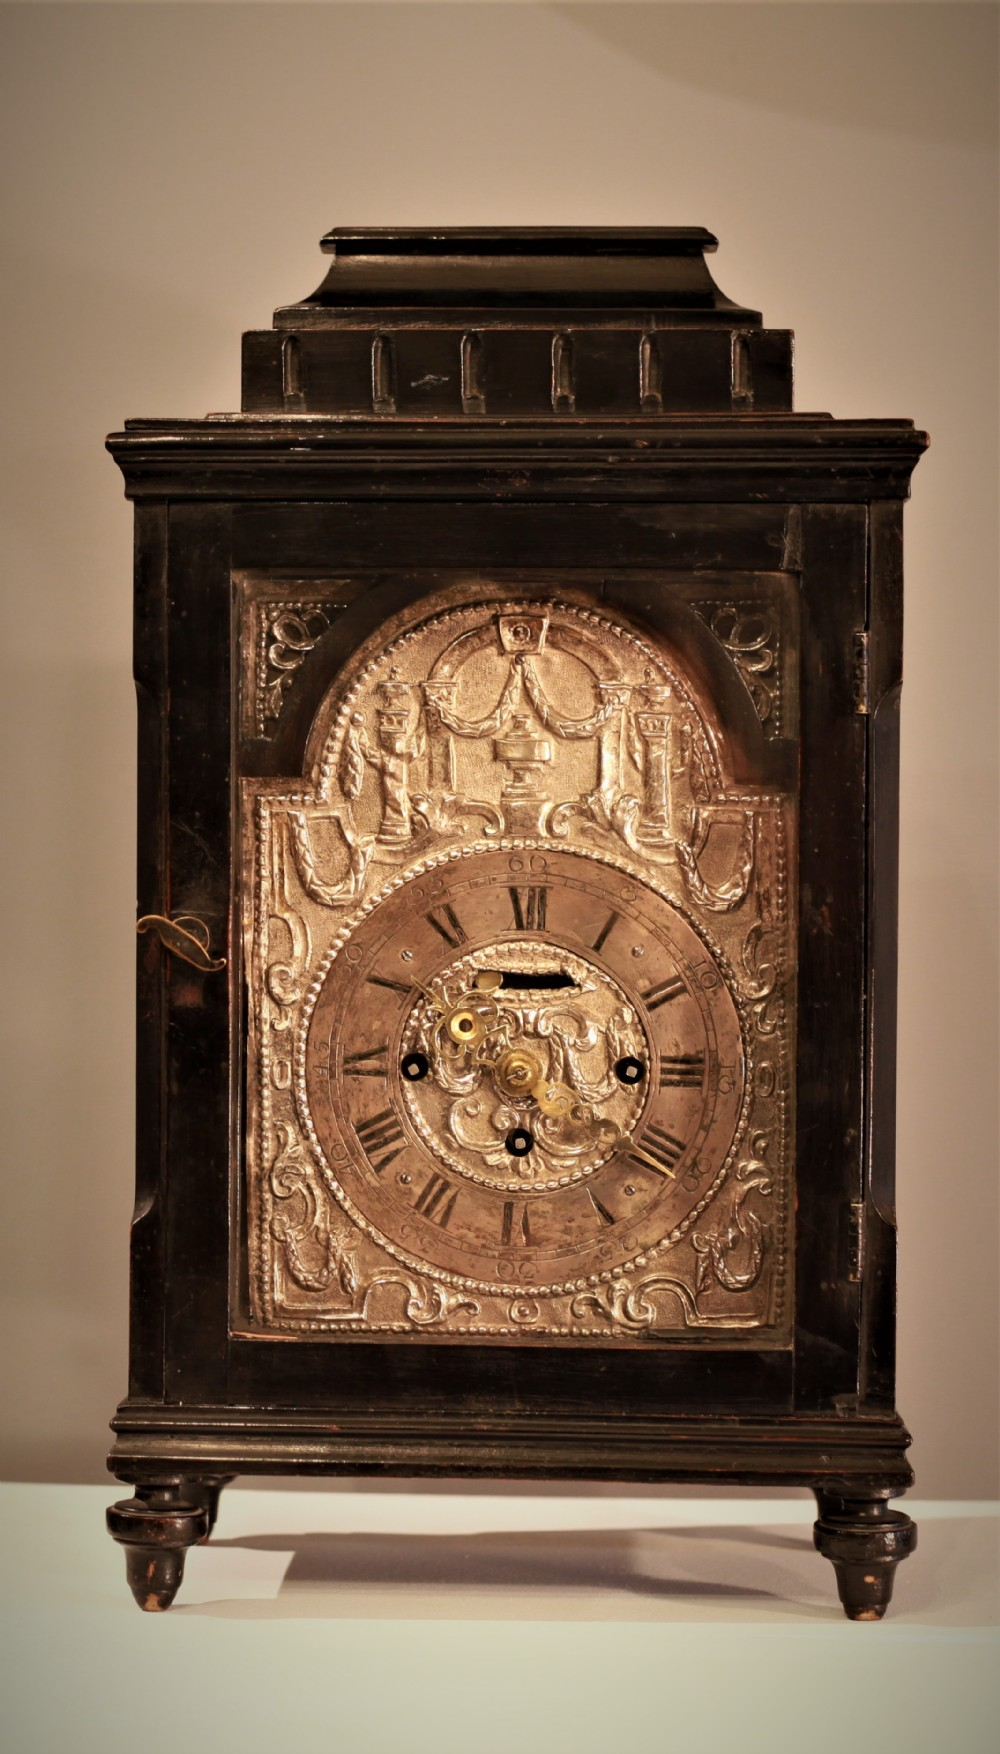 rare c1750 grand sonnerie austrian bracket table clock with verge escapement in original condition with repousse dial